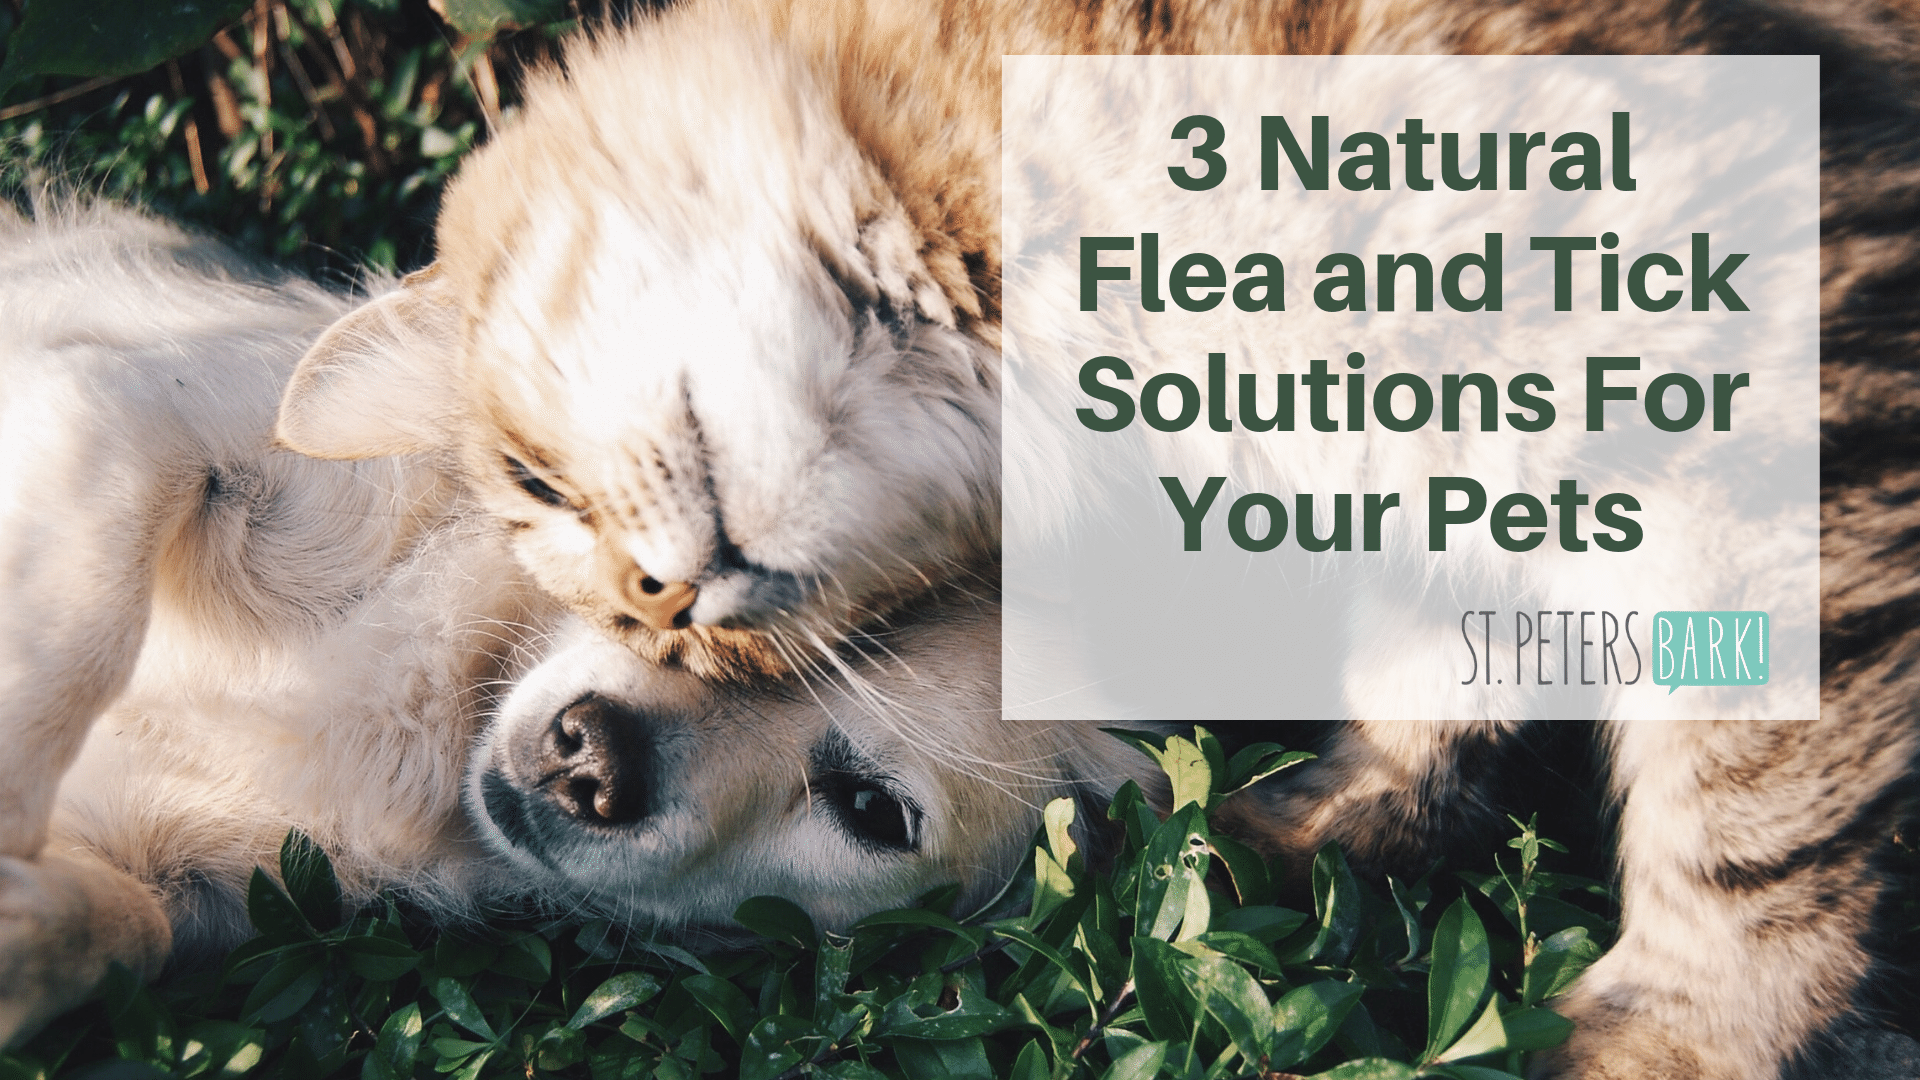 3 Natural Flea & Tick Solutions For Your Pets